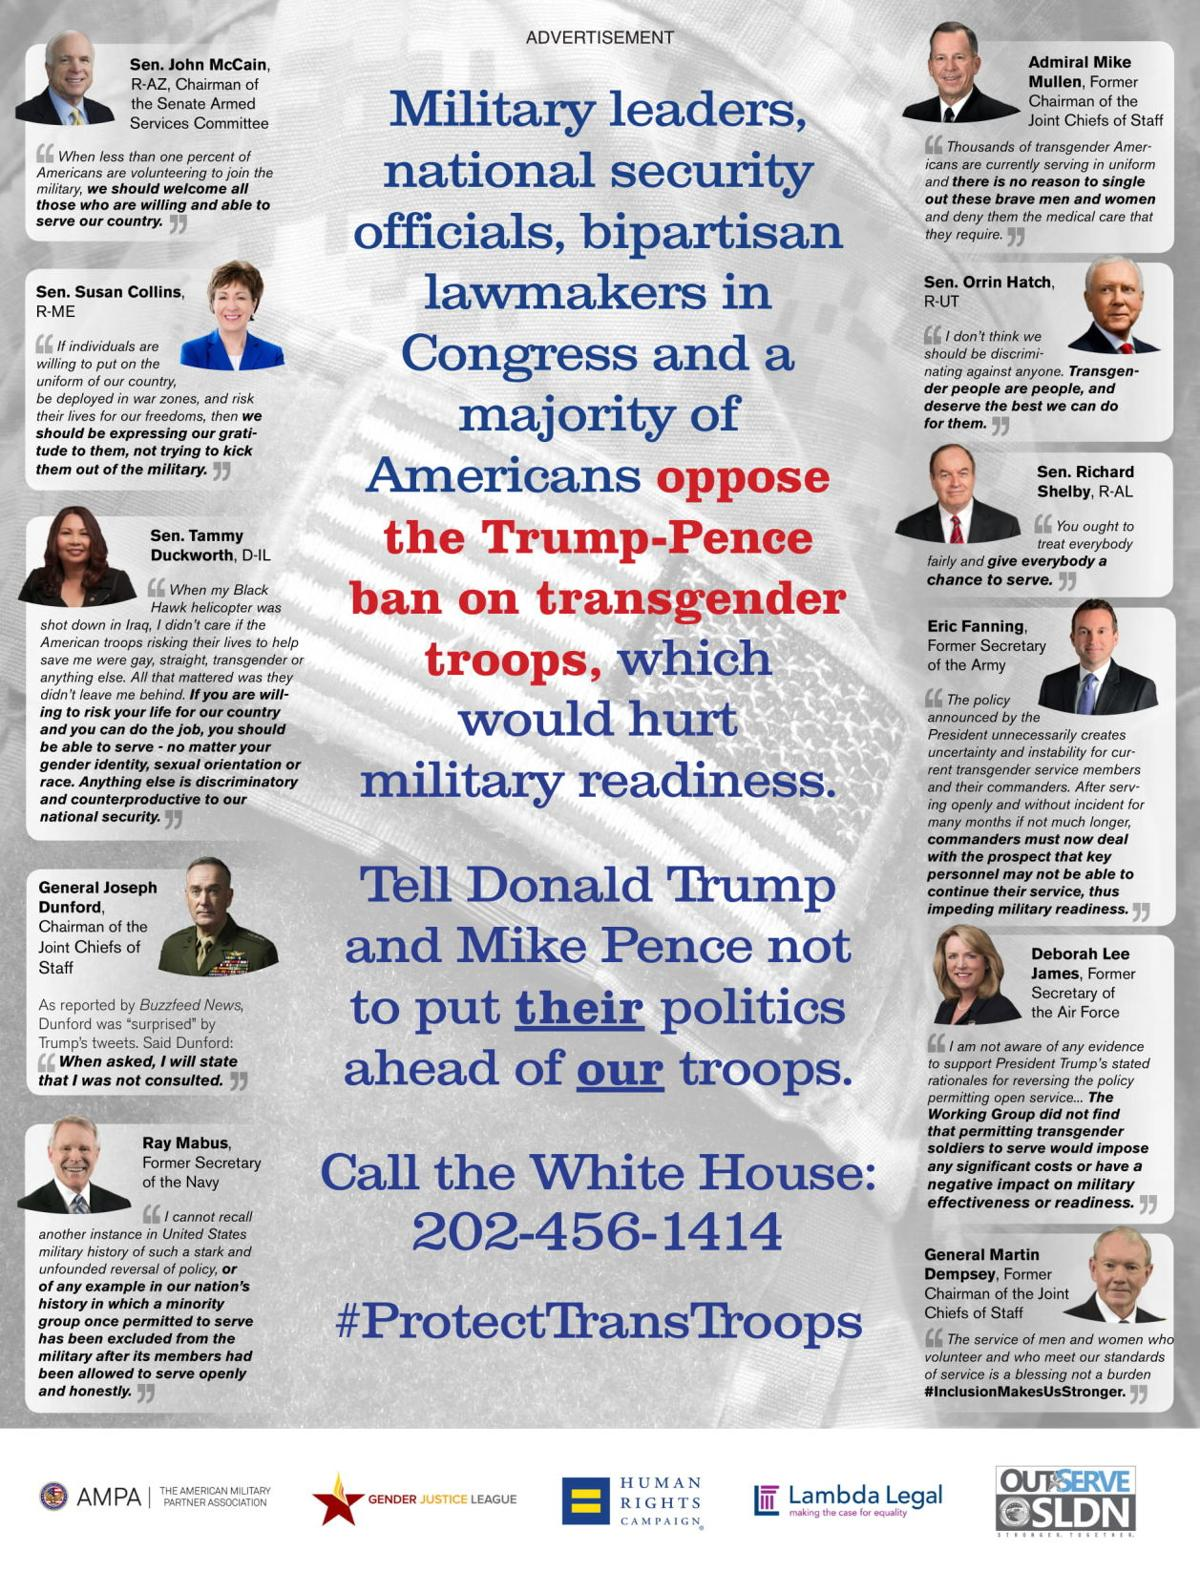 Full-page ad features bipartisan opposition to Trump's transgender ban